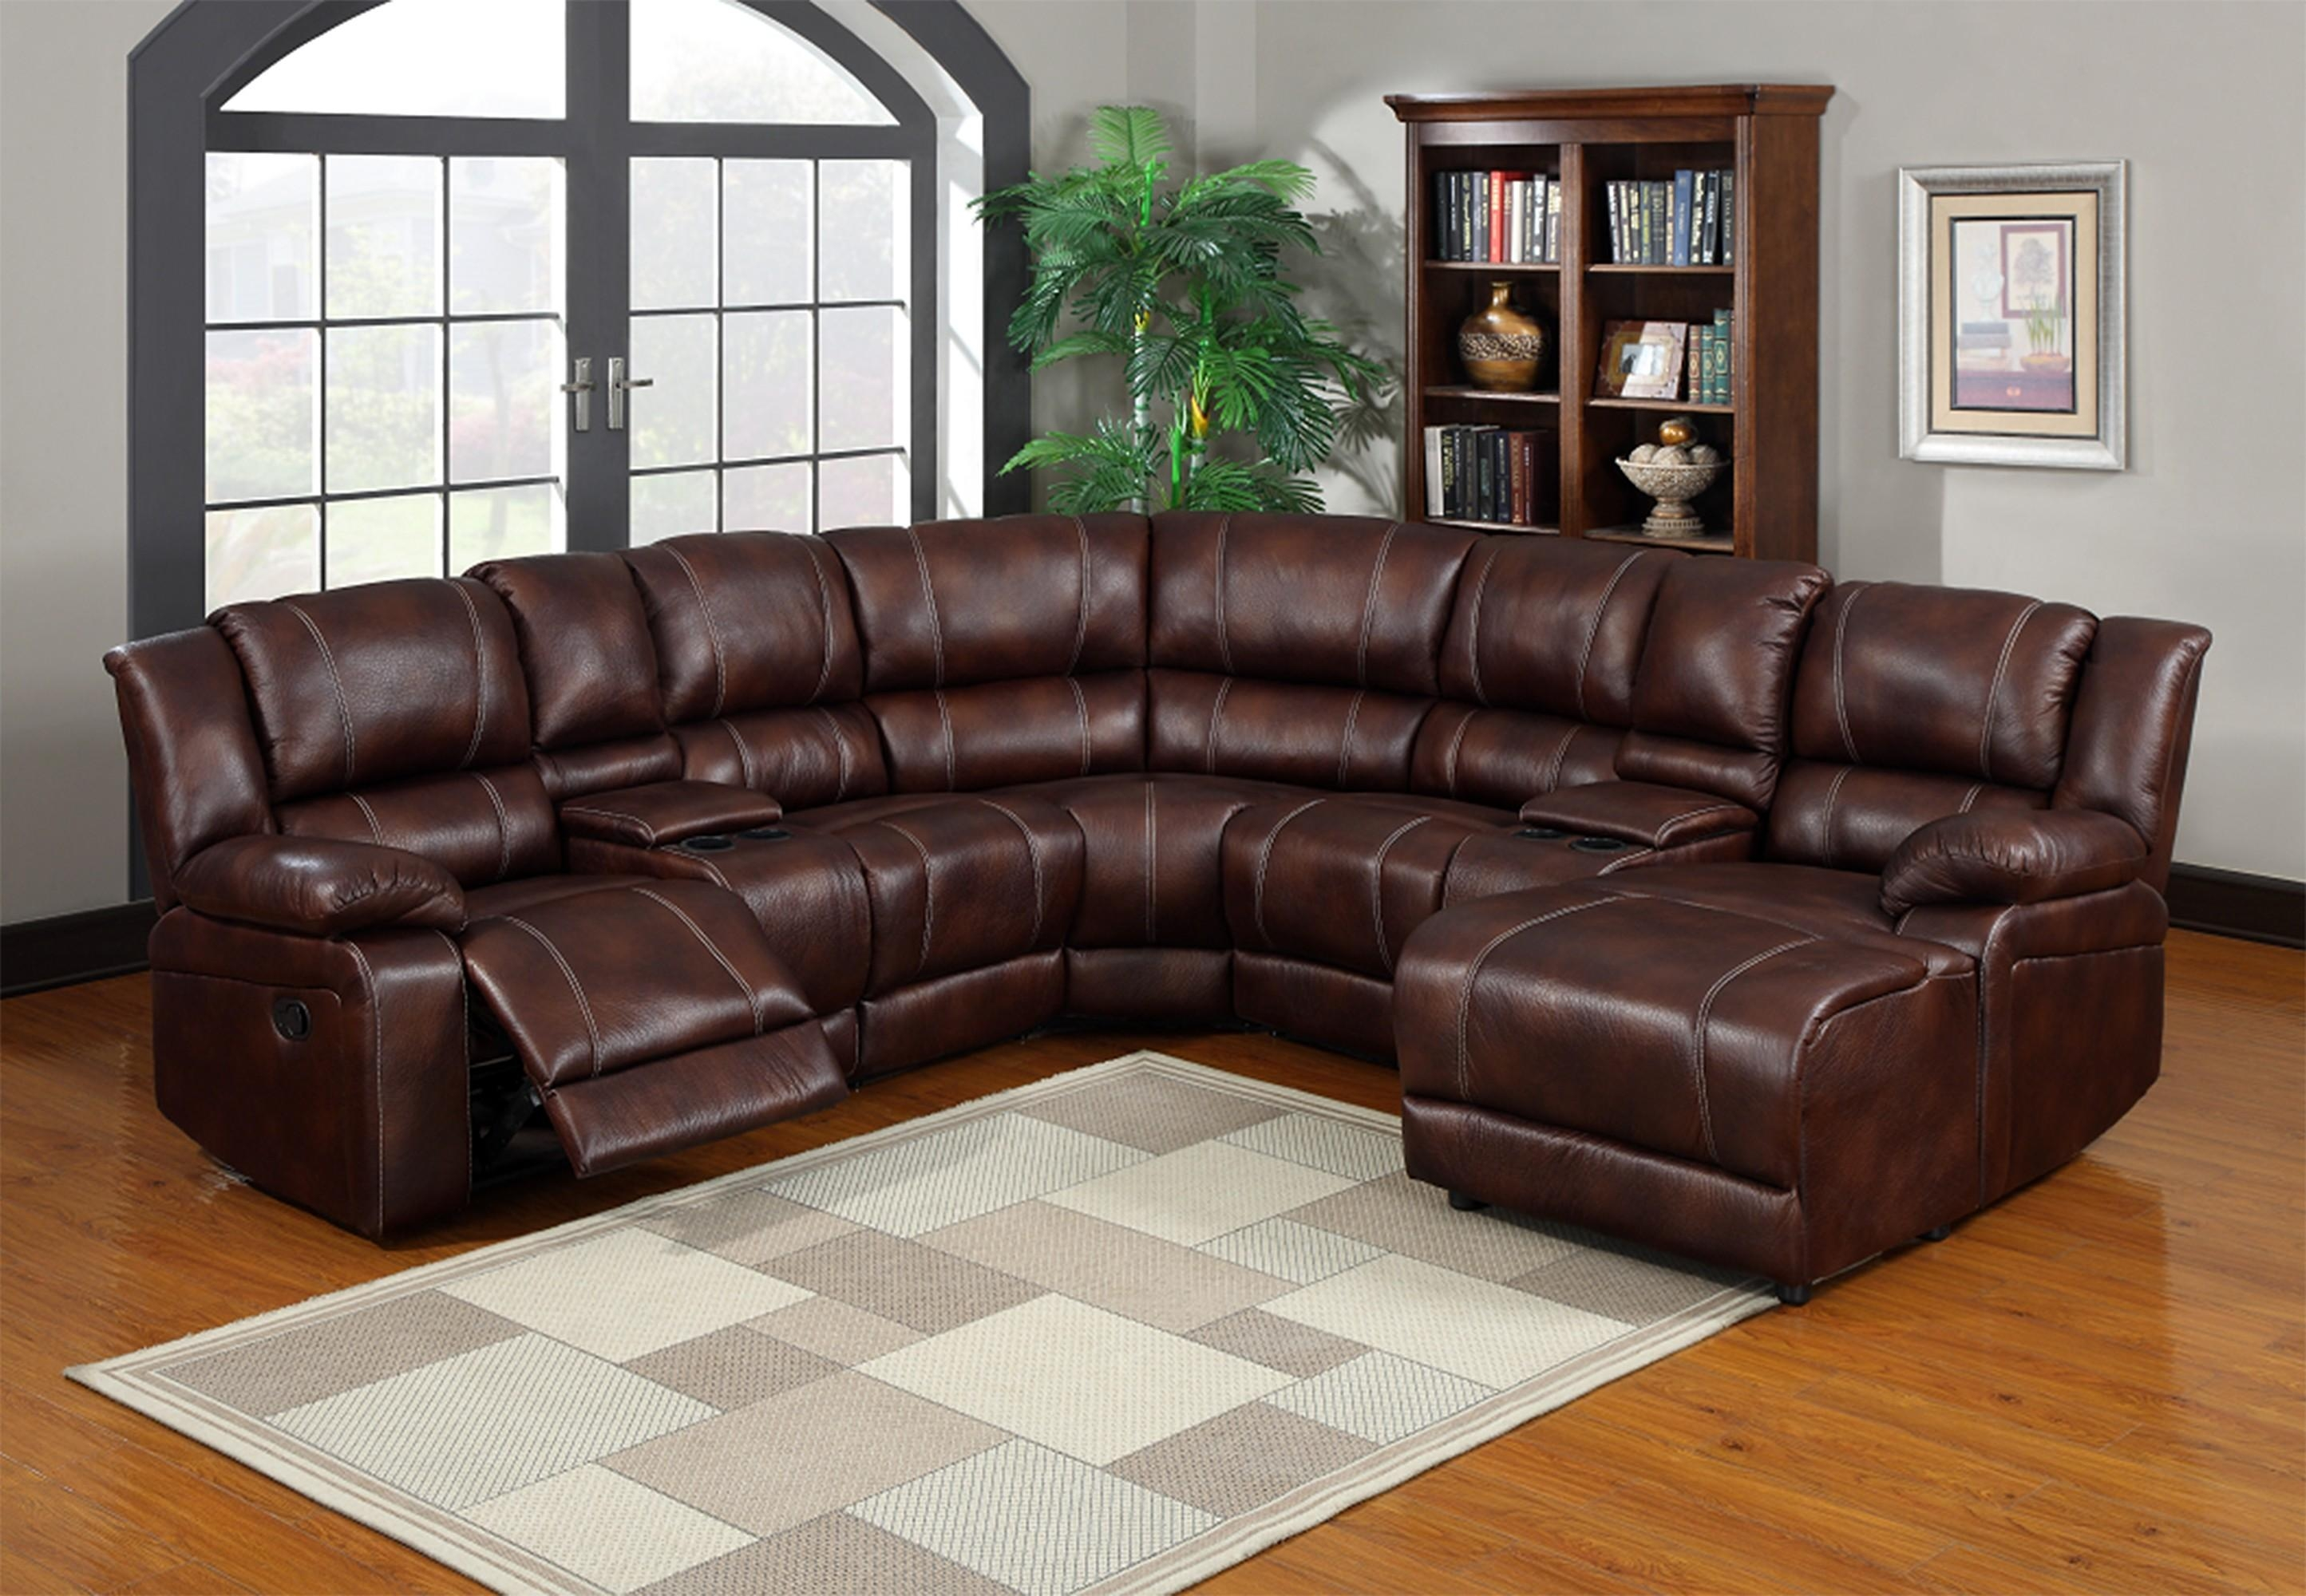 liberty sofa and motion loveseat queen size bed leather 20 top sectional ideas